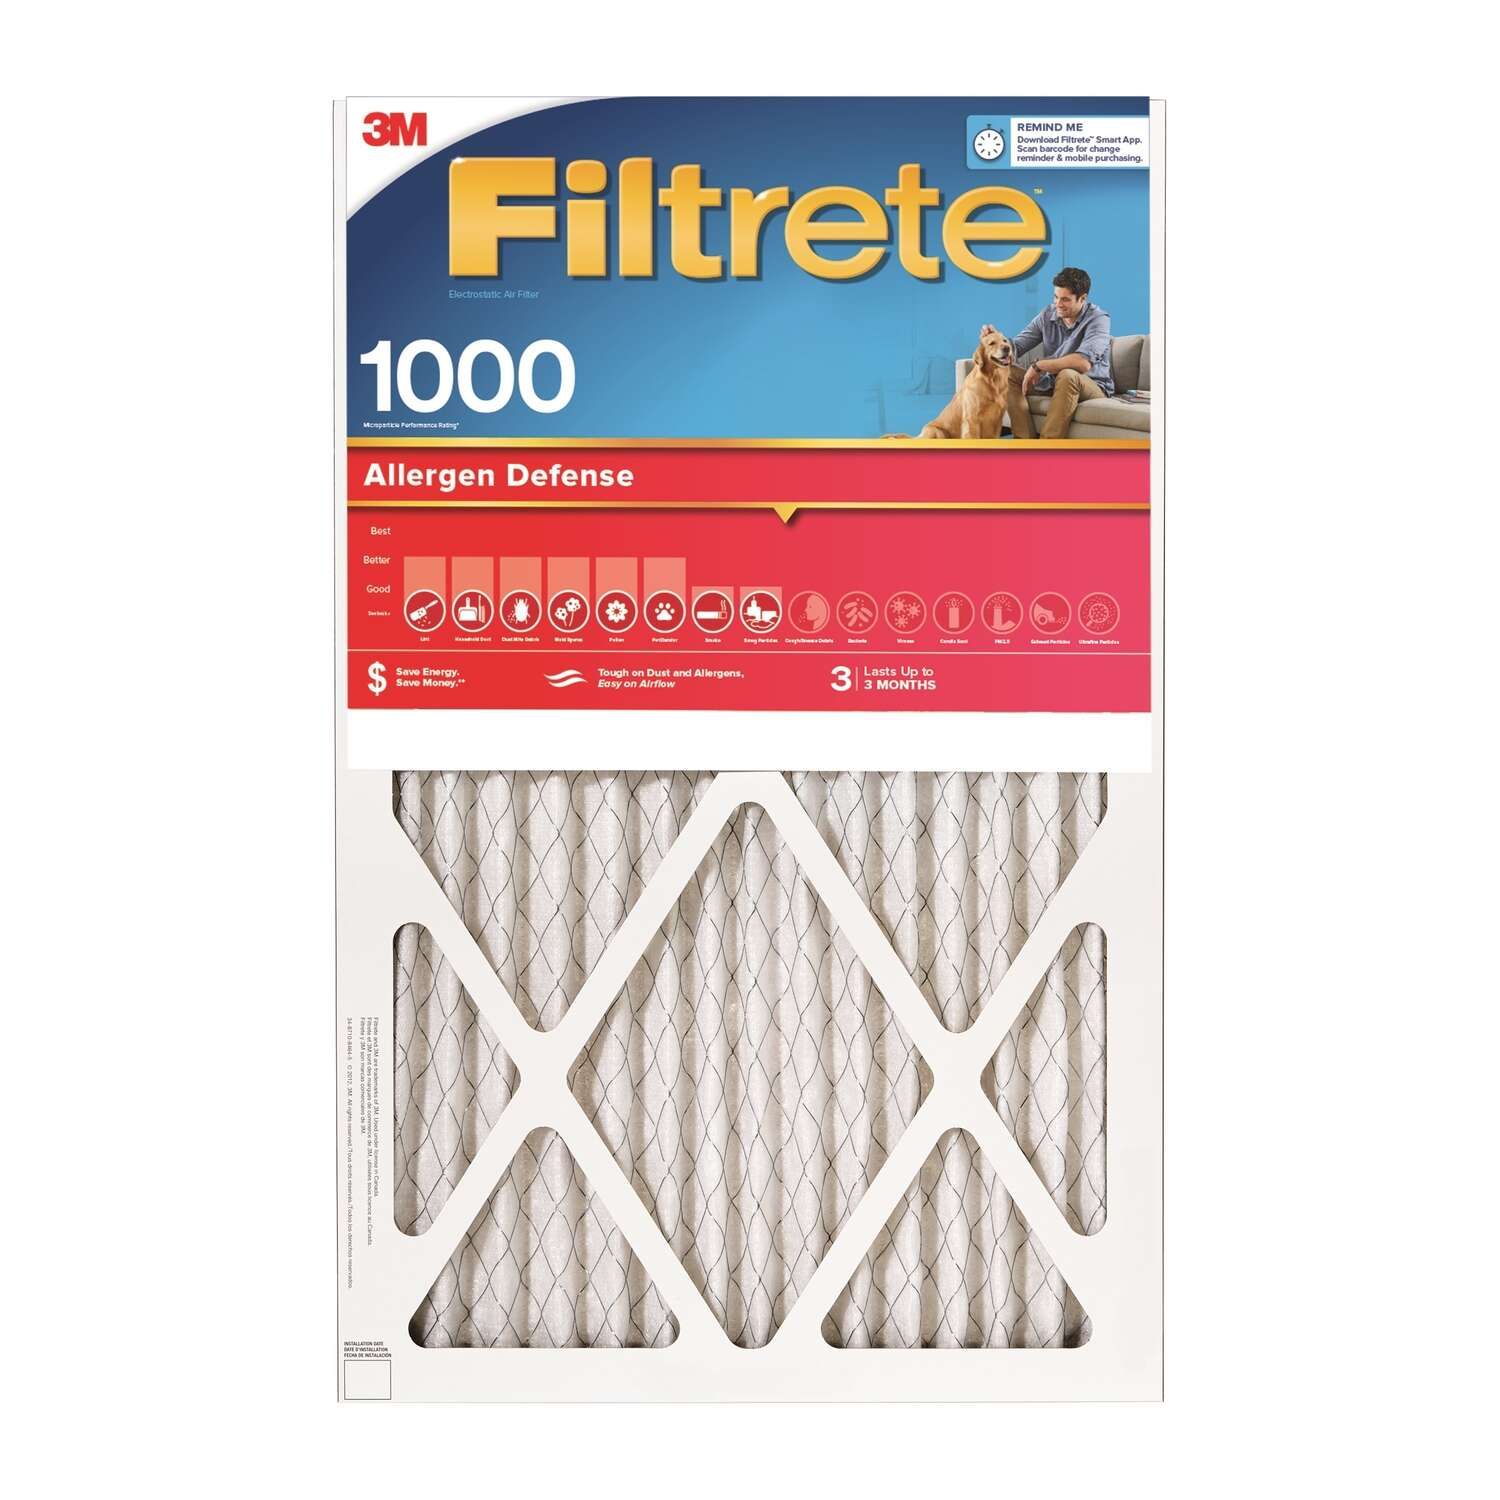 3M  Filtrete  16 in. W x 20 in. H x 1 in. D 11 MERV Pleated Air Filter